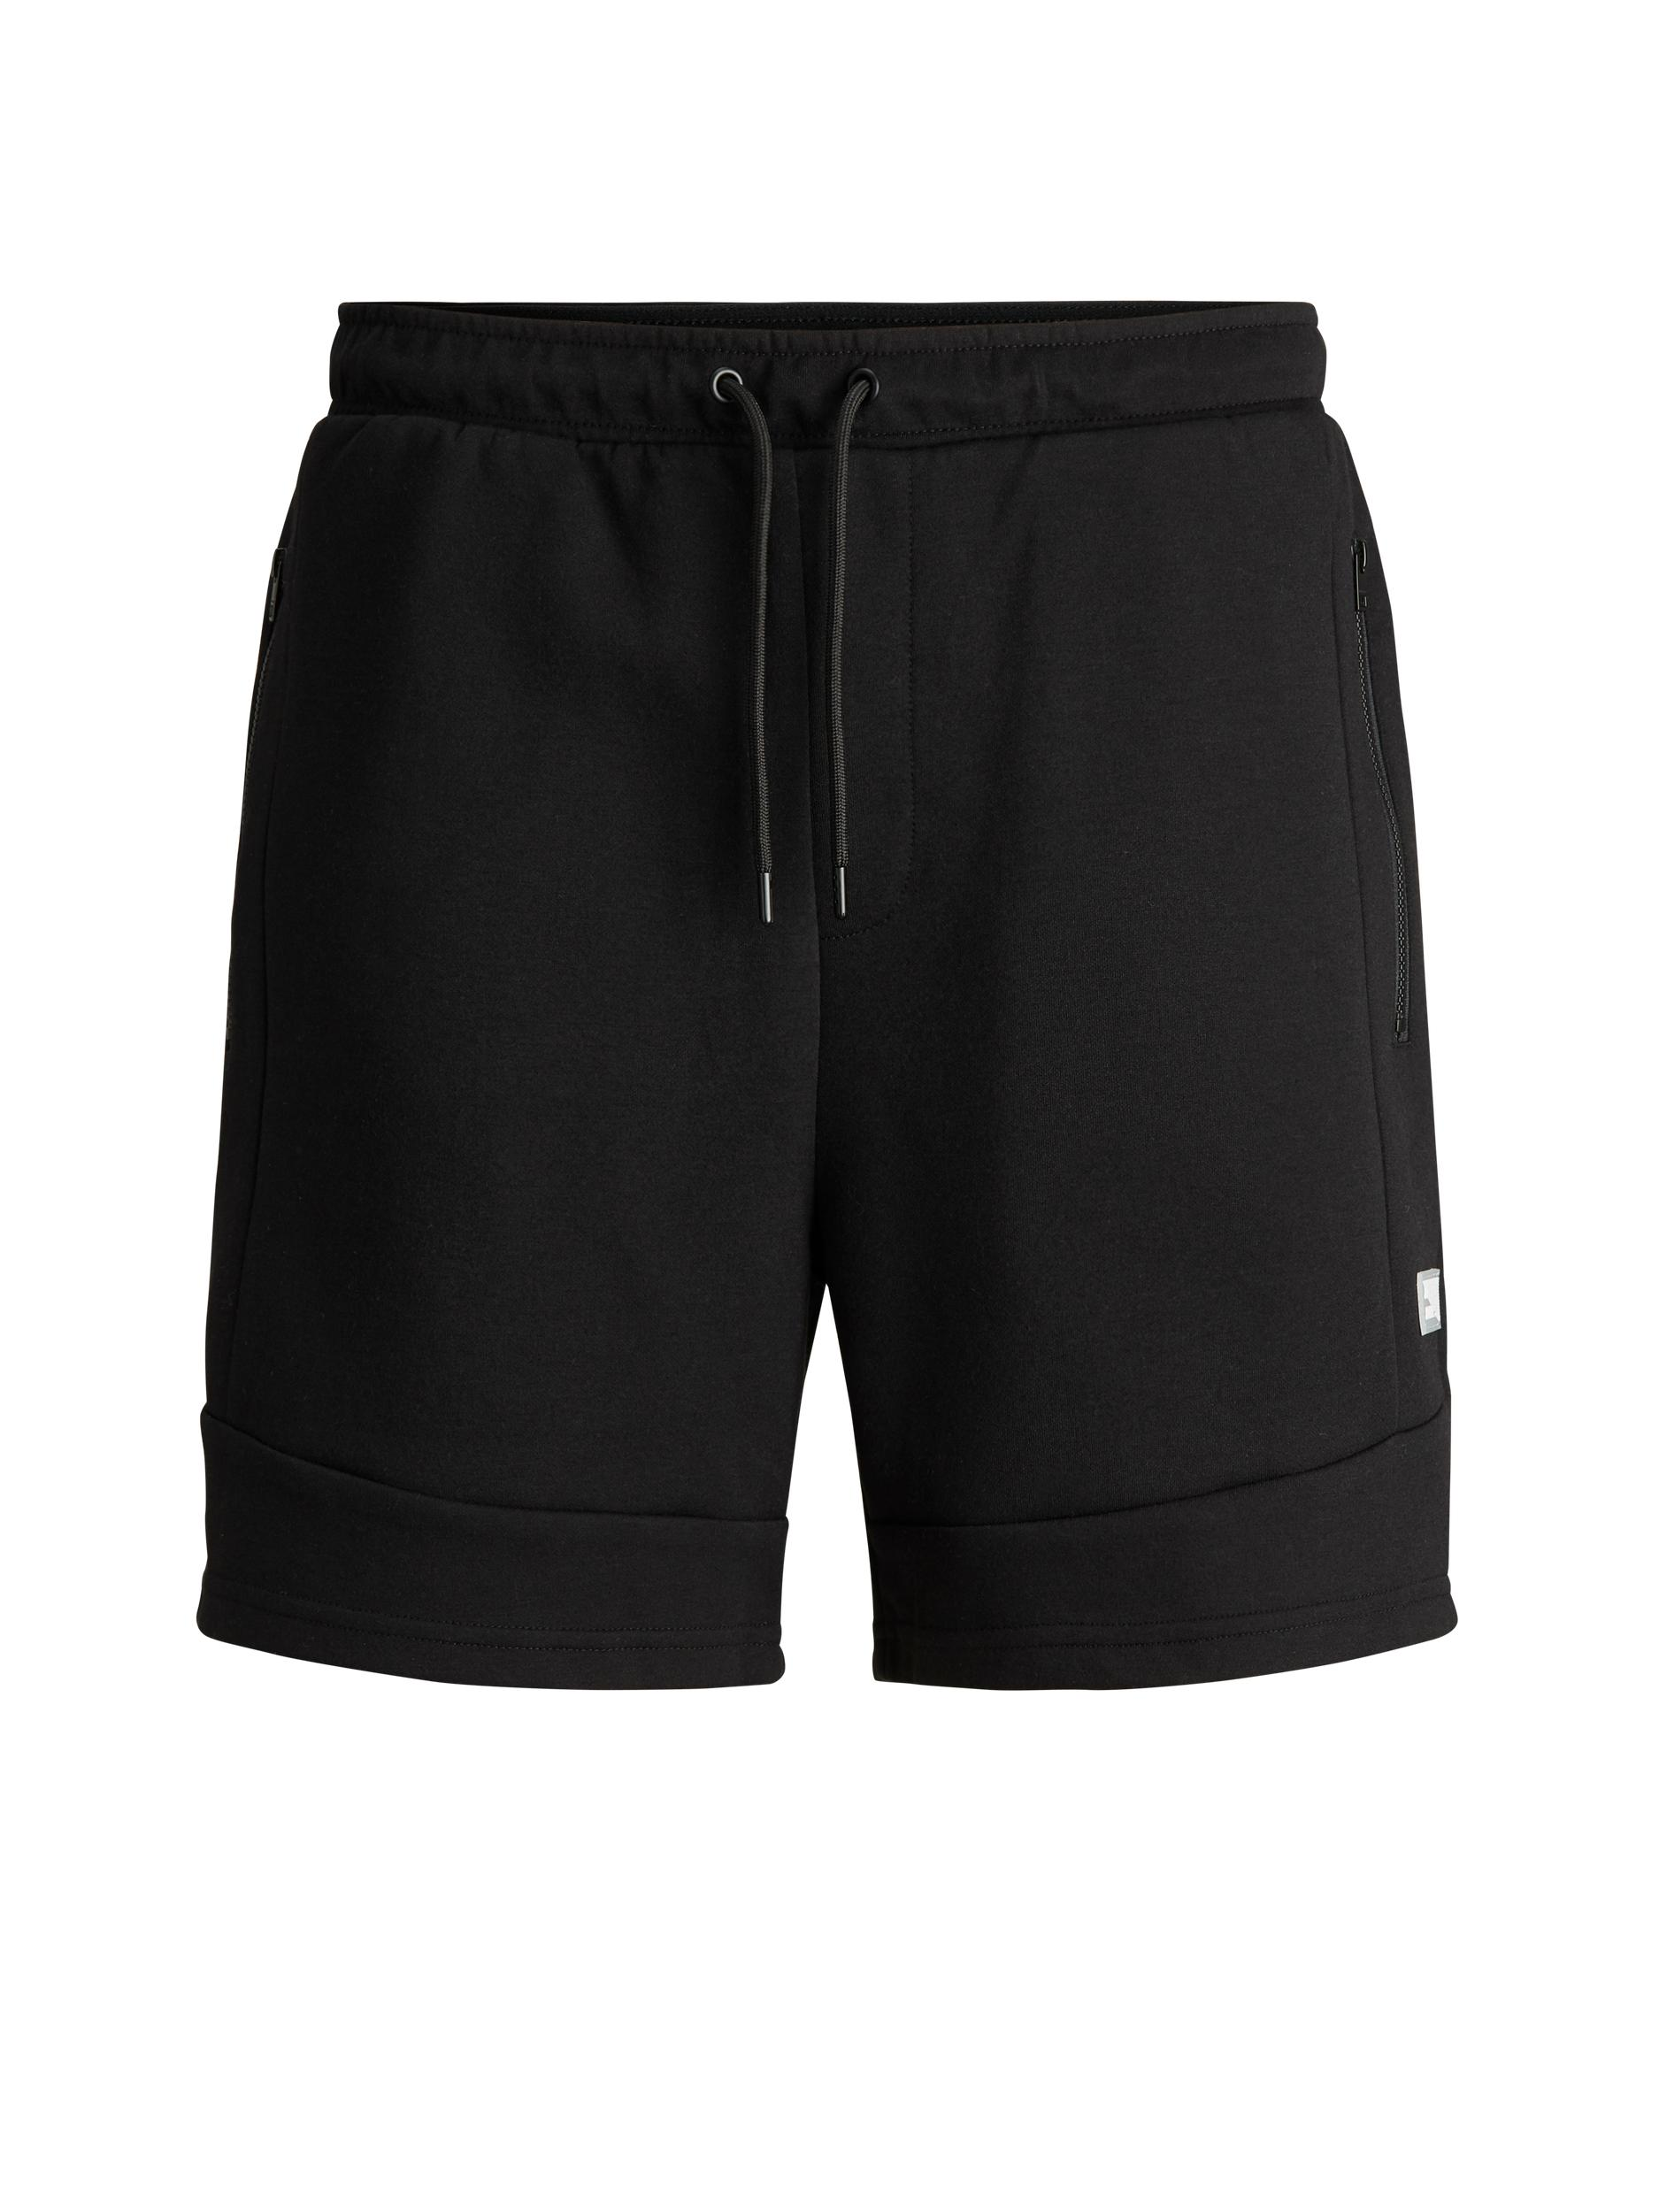 JJIAIR SWEAT SHORTS NB PS JACK&JONES | Shorts | 12186979BLACK